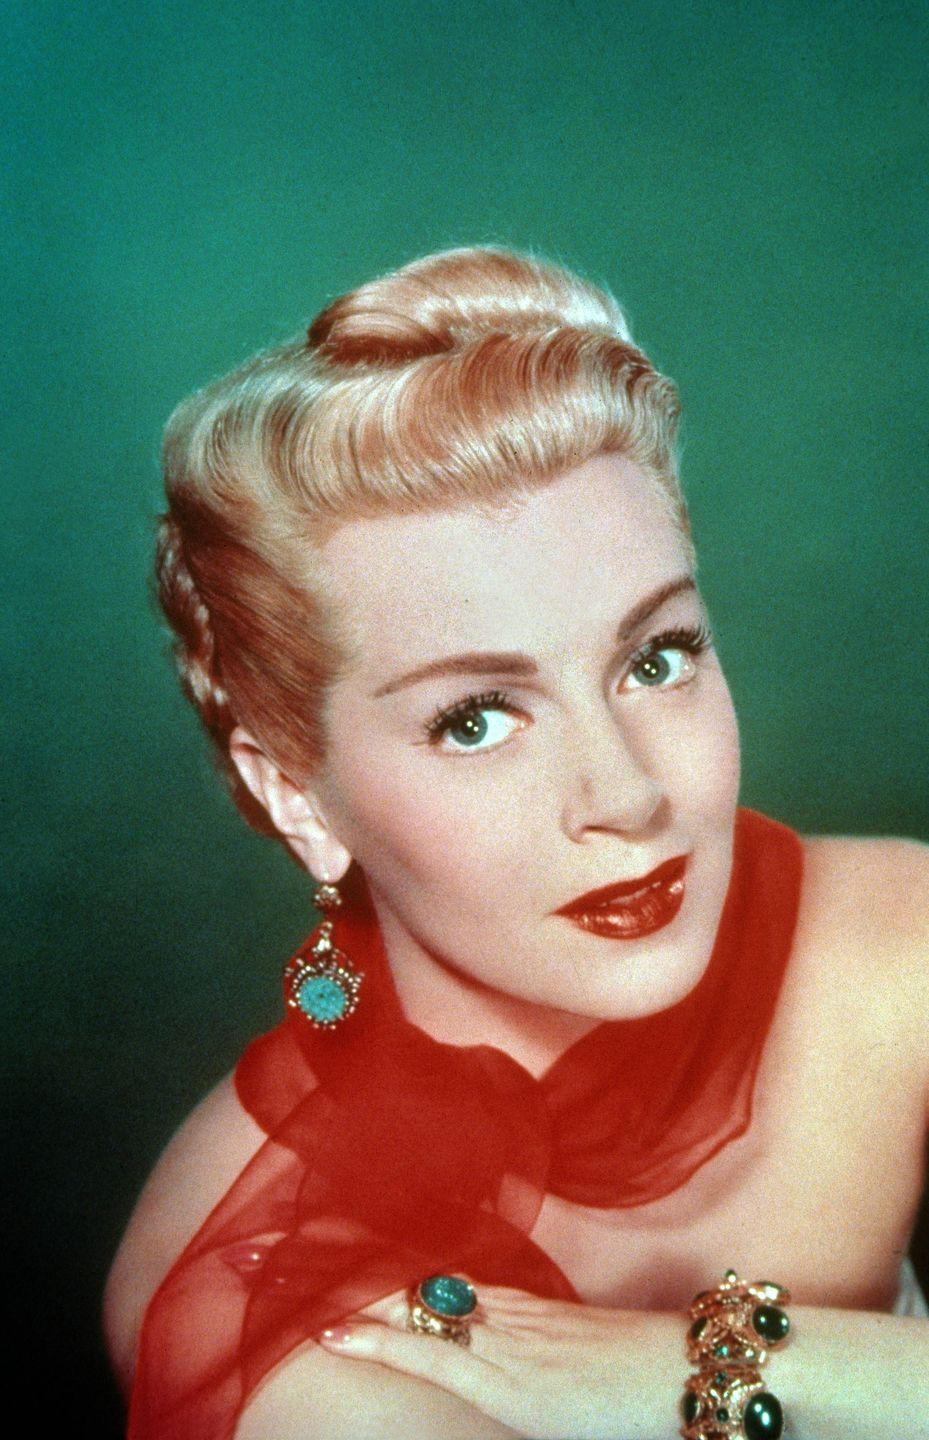 "<p>A trend that carried over from the '40s, victory rolls were tight and voluminous curls set on the top of the head for a sleek and sophisticated look. Actresses like Lana Taylor wore this look when they wanted to add a touch of glamour. </p><p><strong>RECOMMENDED:</strong> <a href=""https://www.goodhousekeeping.com/beauty/hair/g3471/most-popular-hairstyles-of-all-time/"" rel=""nofollow noopener"" target=""_blank"" data-ylk=""slk:The Trendiest Hairstyle the Year You Were Born"" class=""link rapid-noclick-resp"">The Trendiest Hairstyle the Year You Were Born</a></p>"